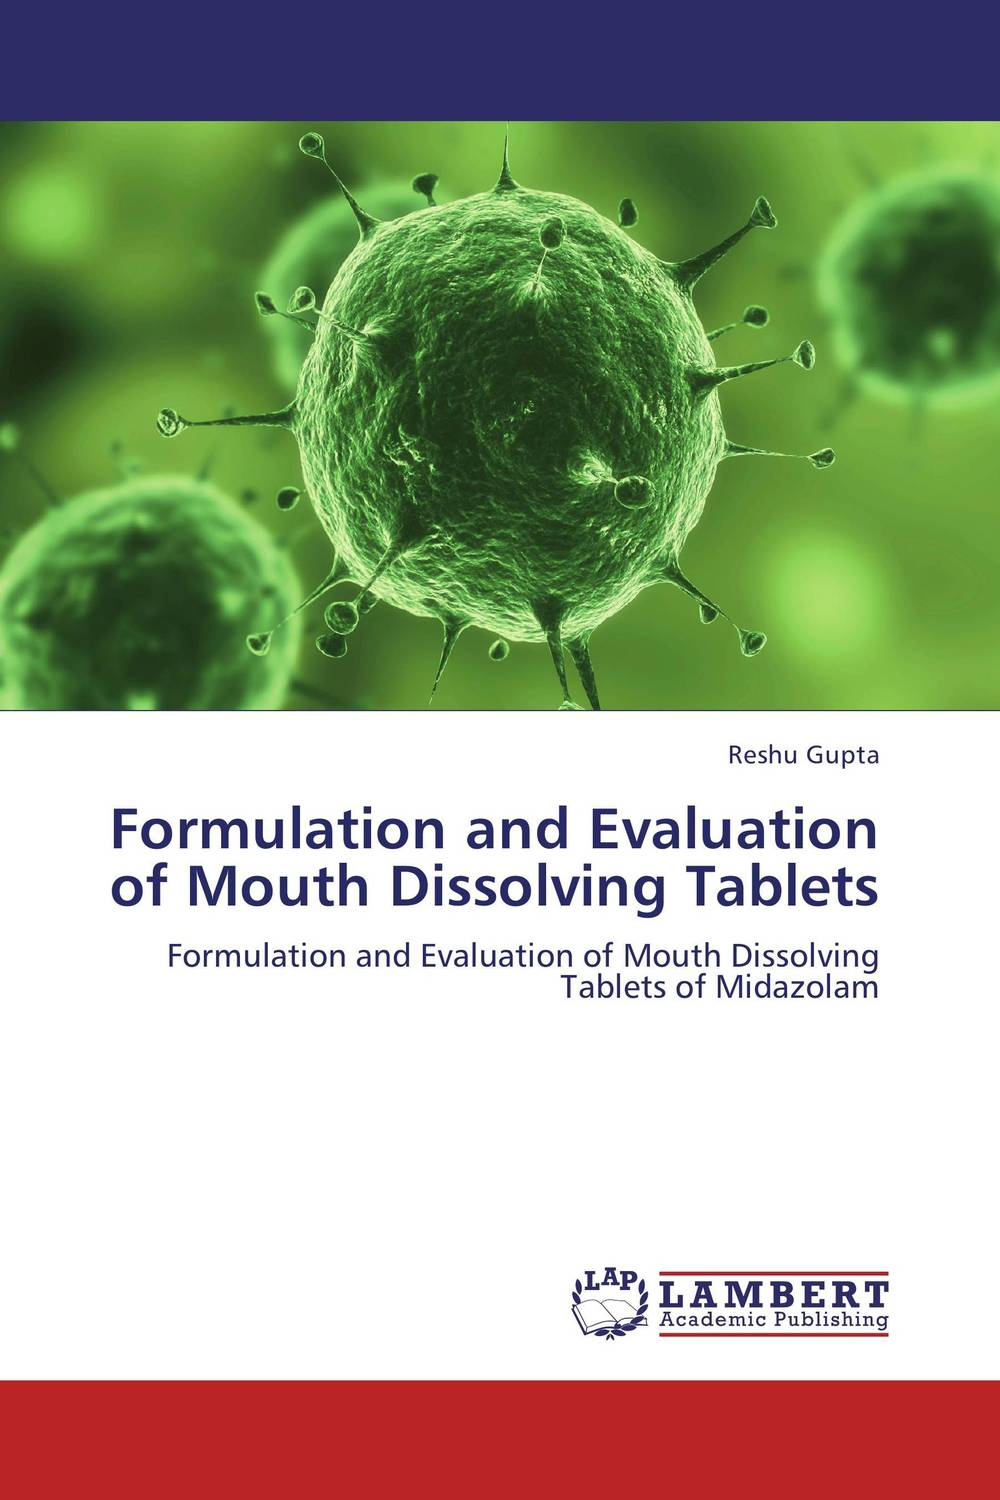 Formulation and Evaluation of Mouth Dissolving Tablets amita yadav kamal singh rathore and geeta m patel formulation evaluation and optimization of mouth dissolving tablets